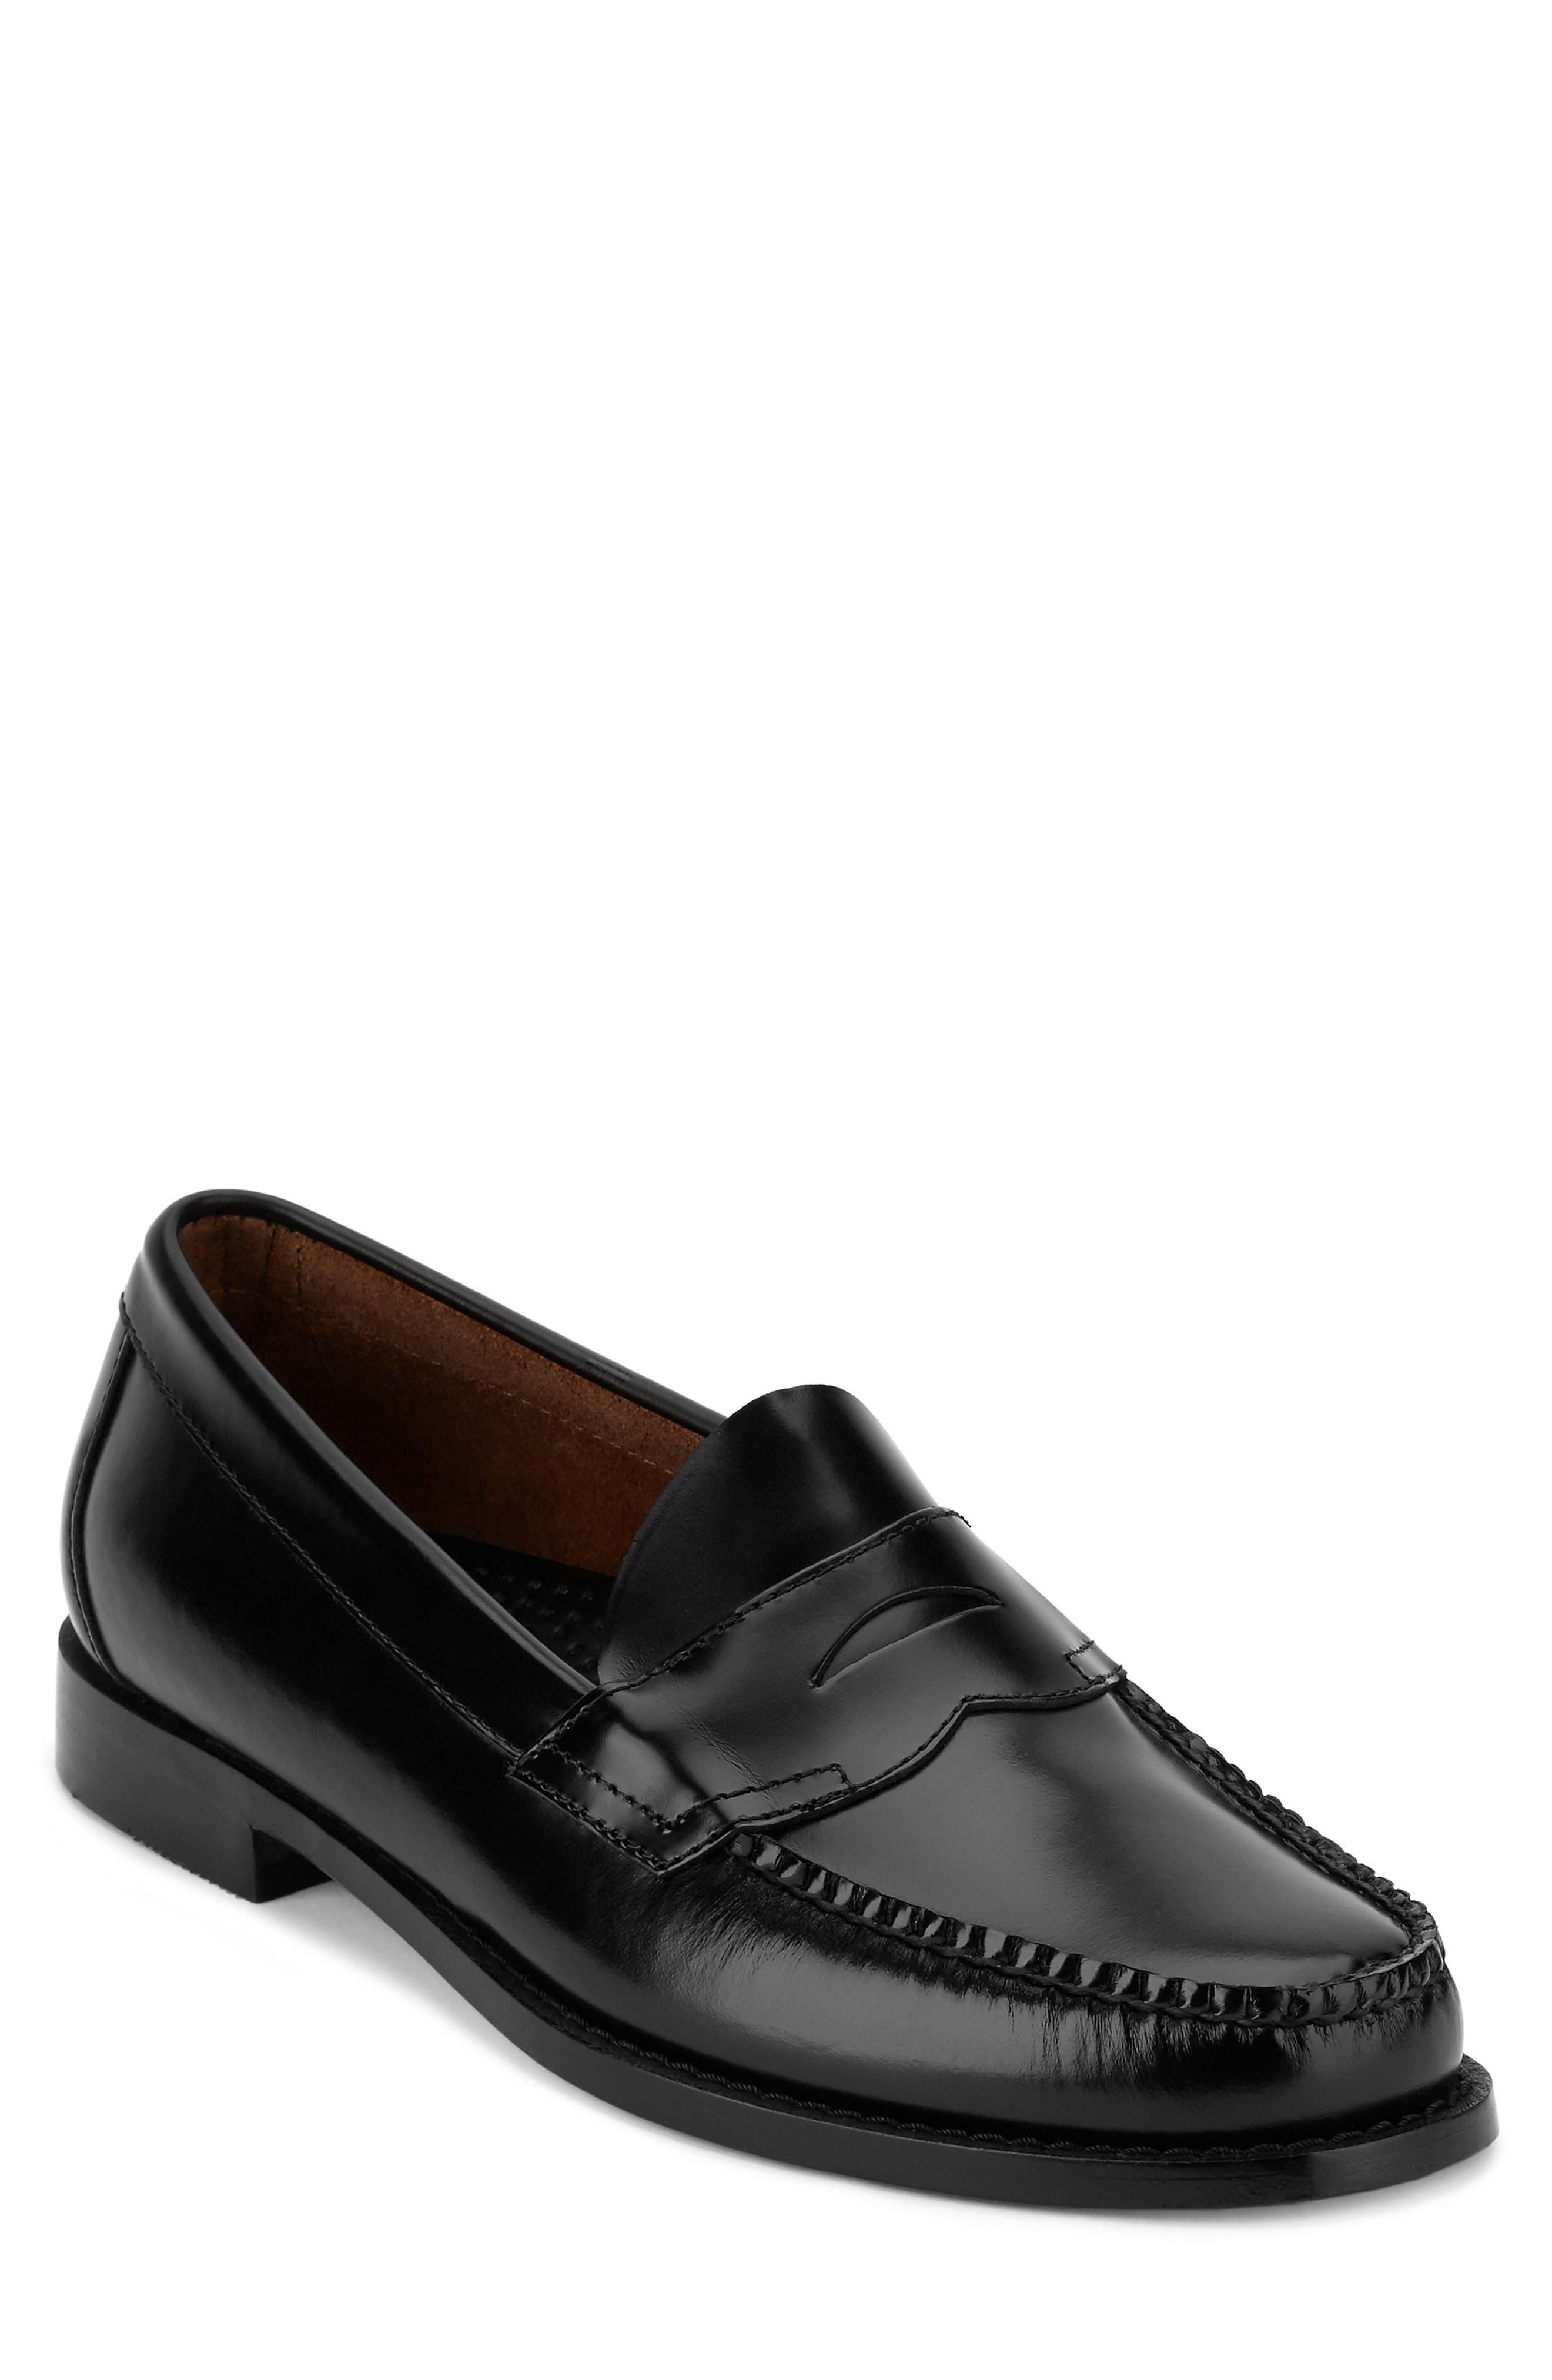 Logan Penny Loafer,                         Main,                         color, 001